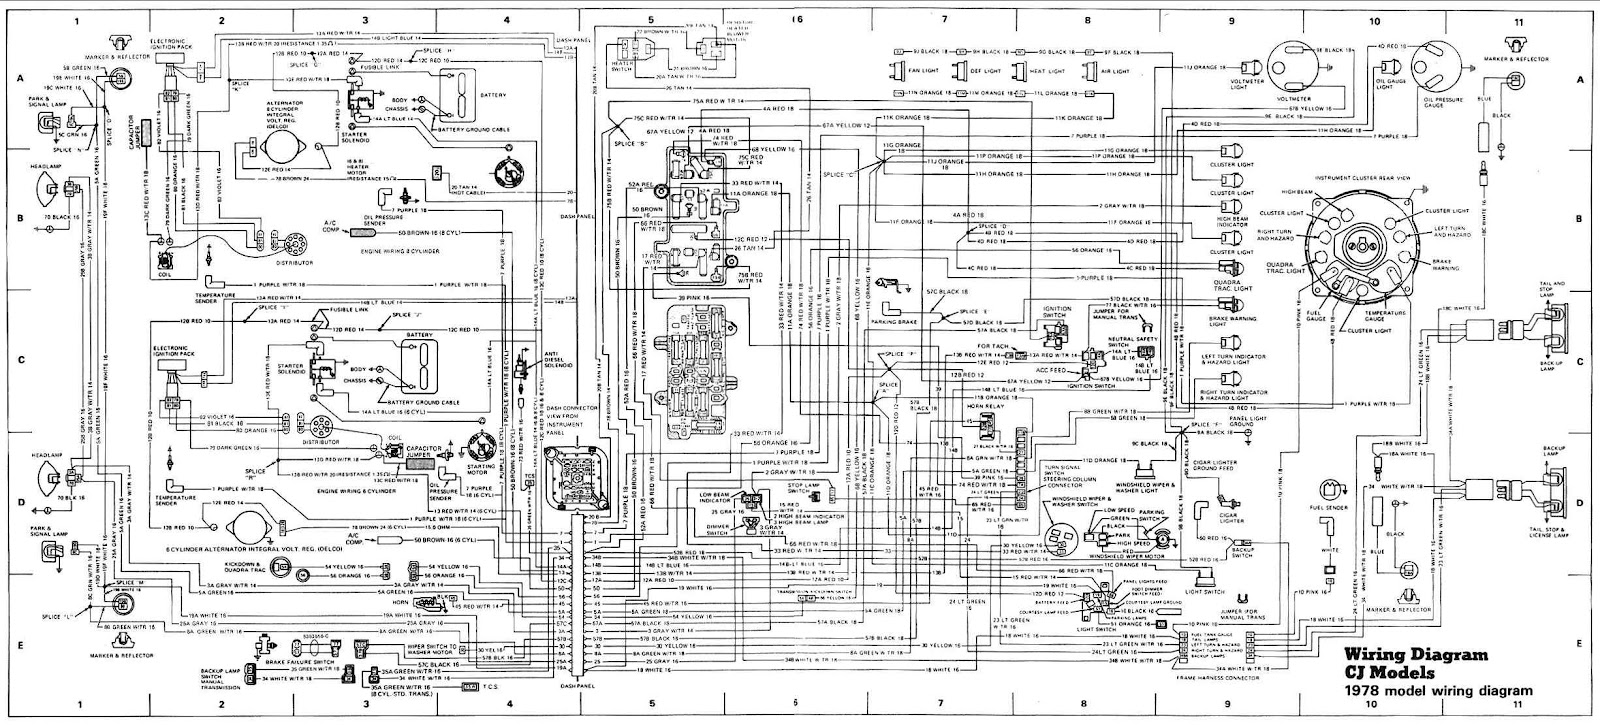 Jeep CJ Models 1978 Complete Electrical Wiring Diagram jeep stereo wiring diagram jeep free wiring diagrams 2003 jeep liberty radio wiring diagram at readyjetset.co